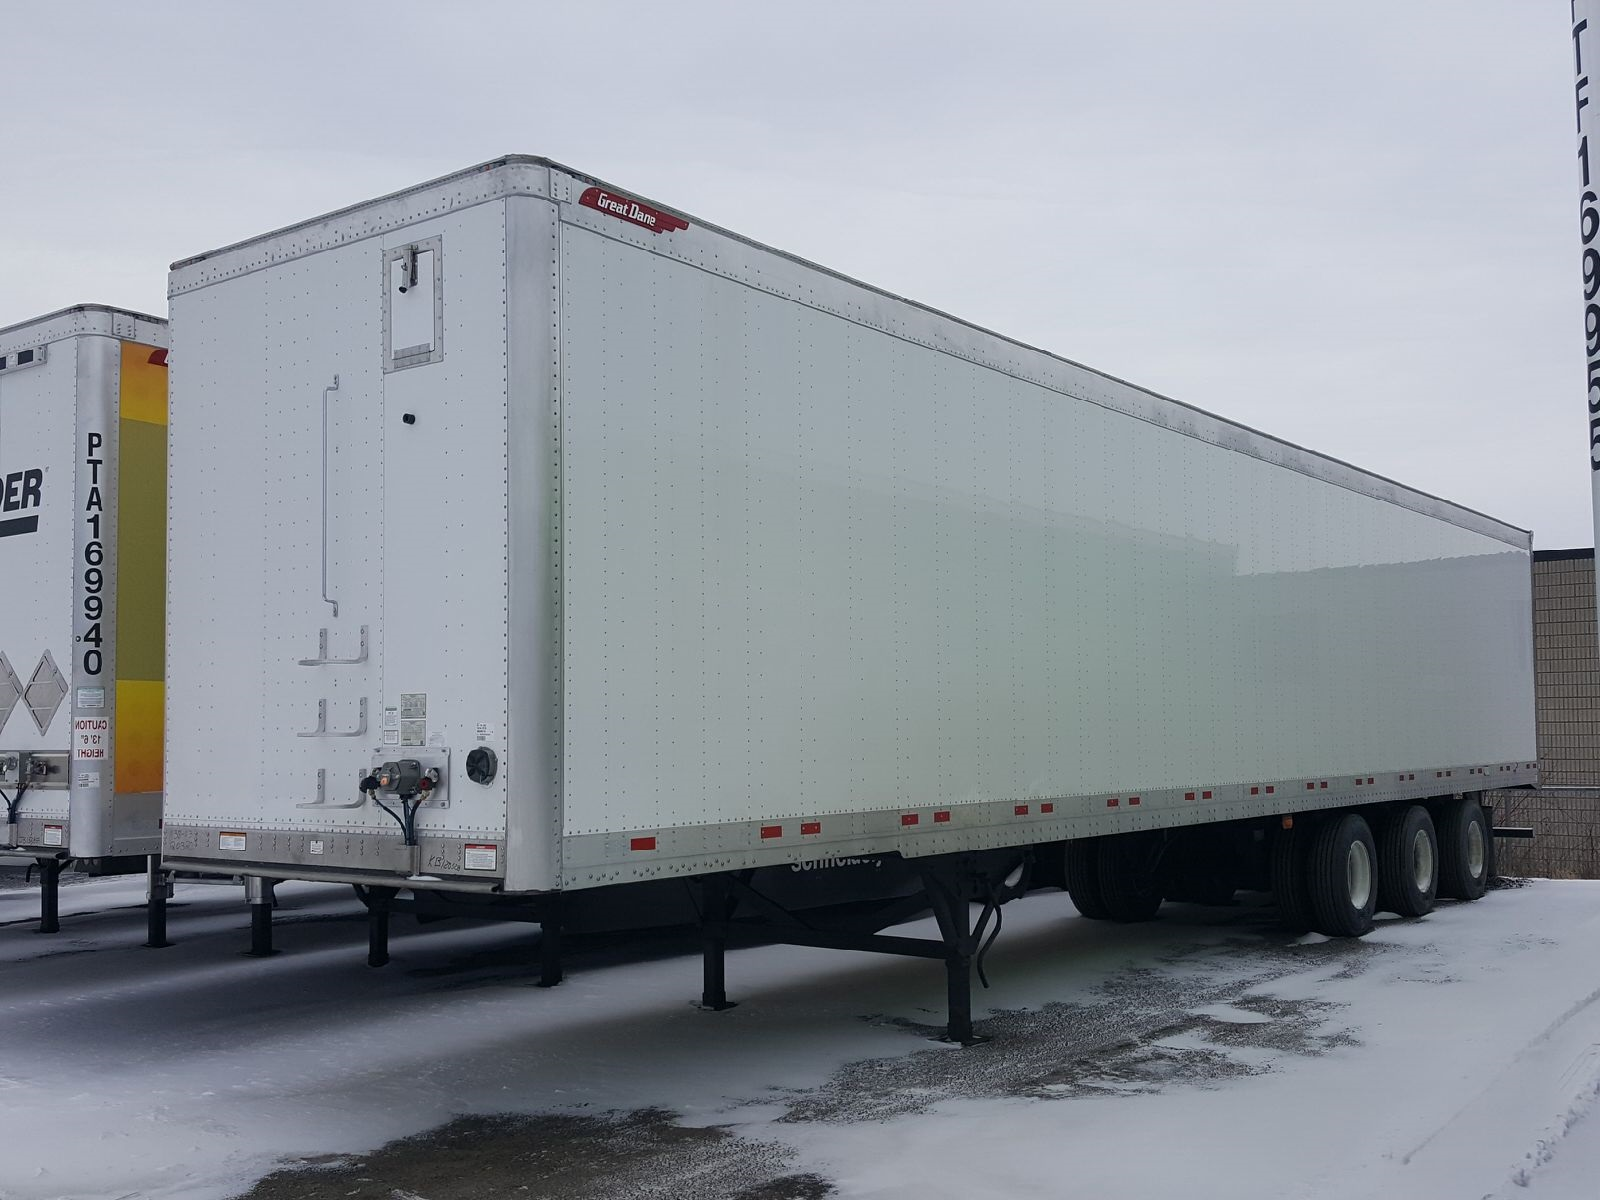 2020 GREAT DANE CHAMPION CS1 LOGISTIC TRIDEM SWING DOOR VAN TRAILERS